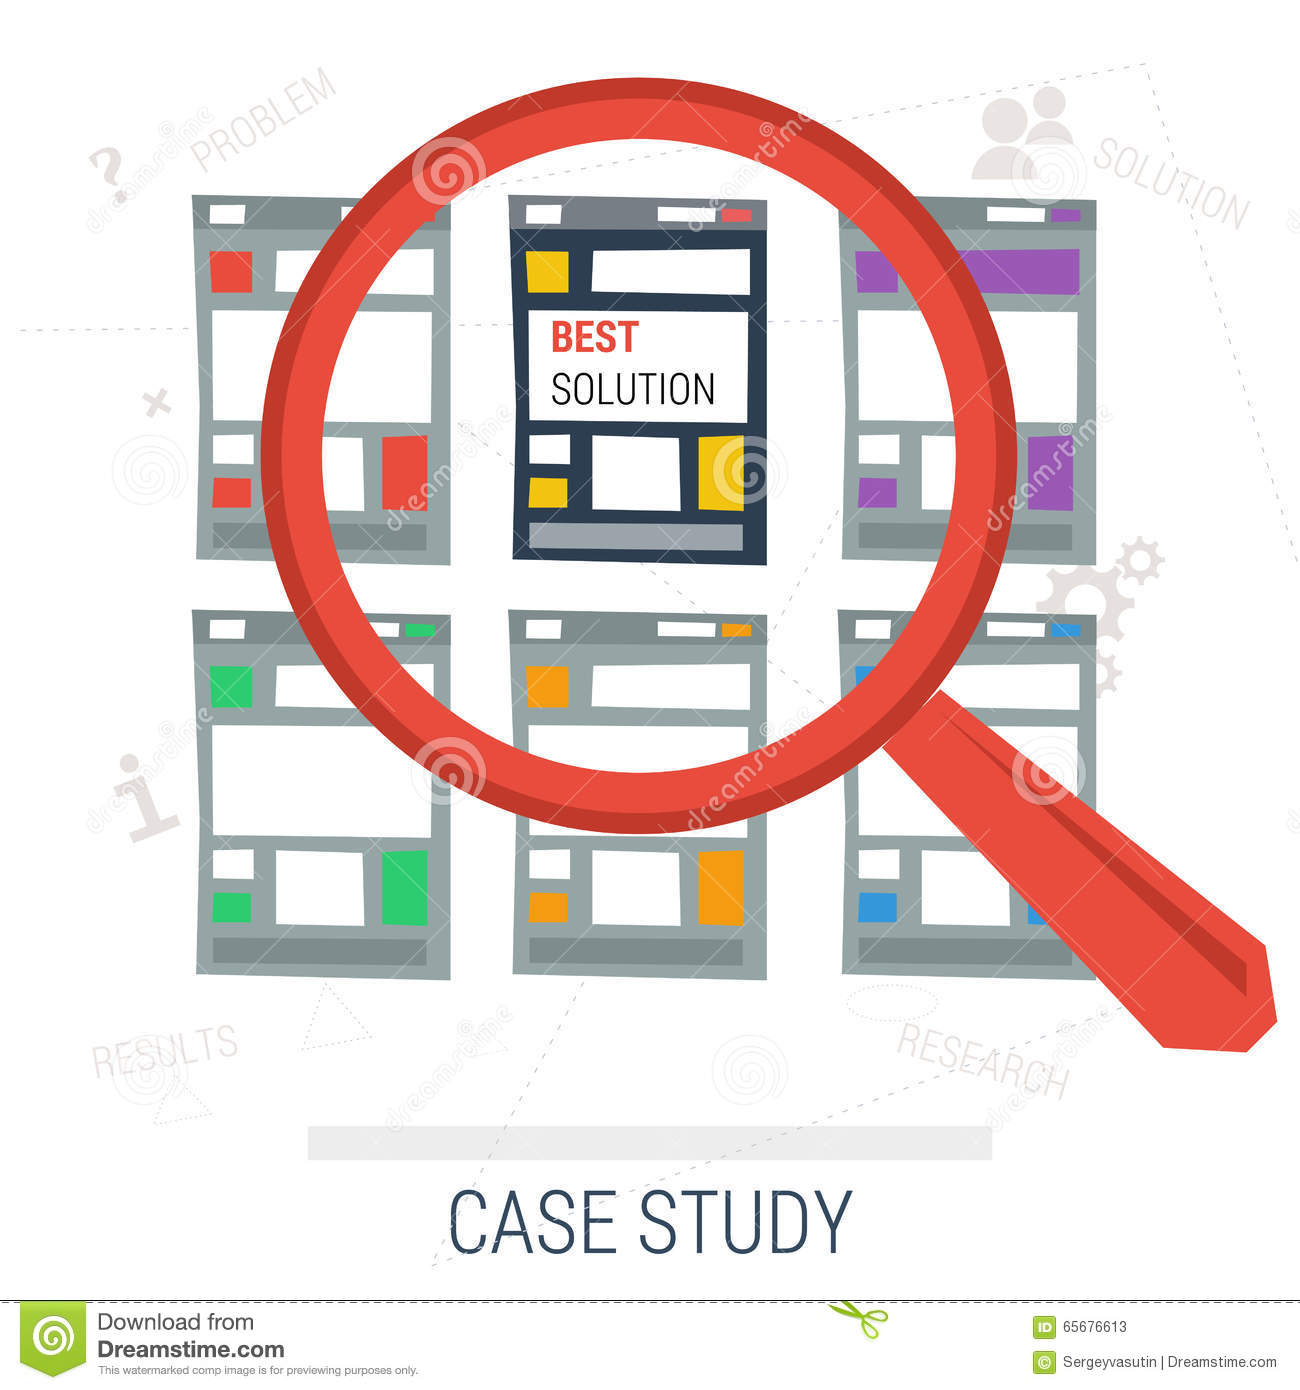 Cvs Pharmacy Improvement Case Study Solution & Analysis